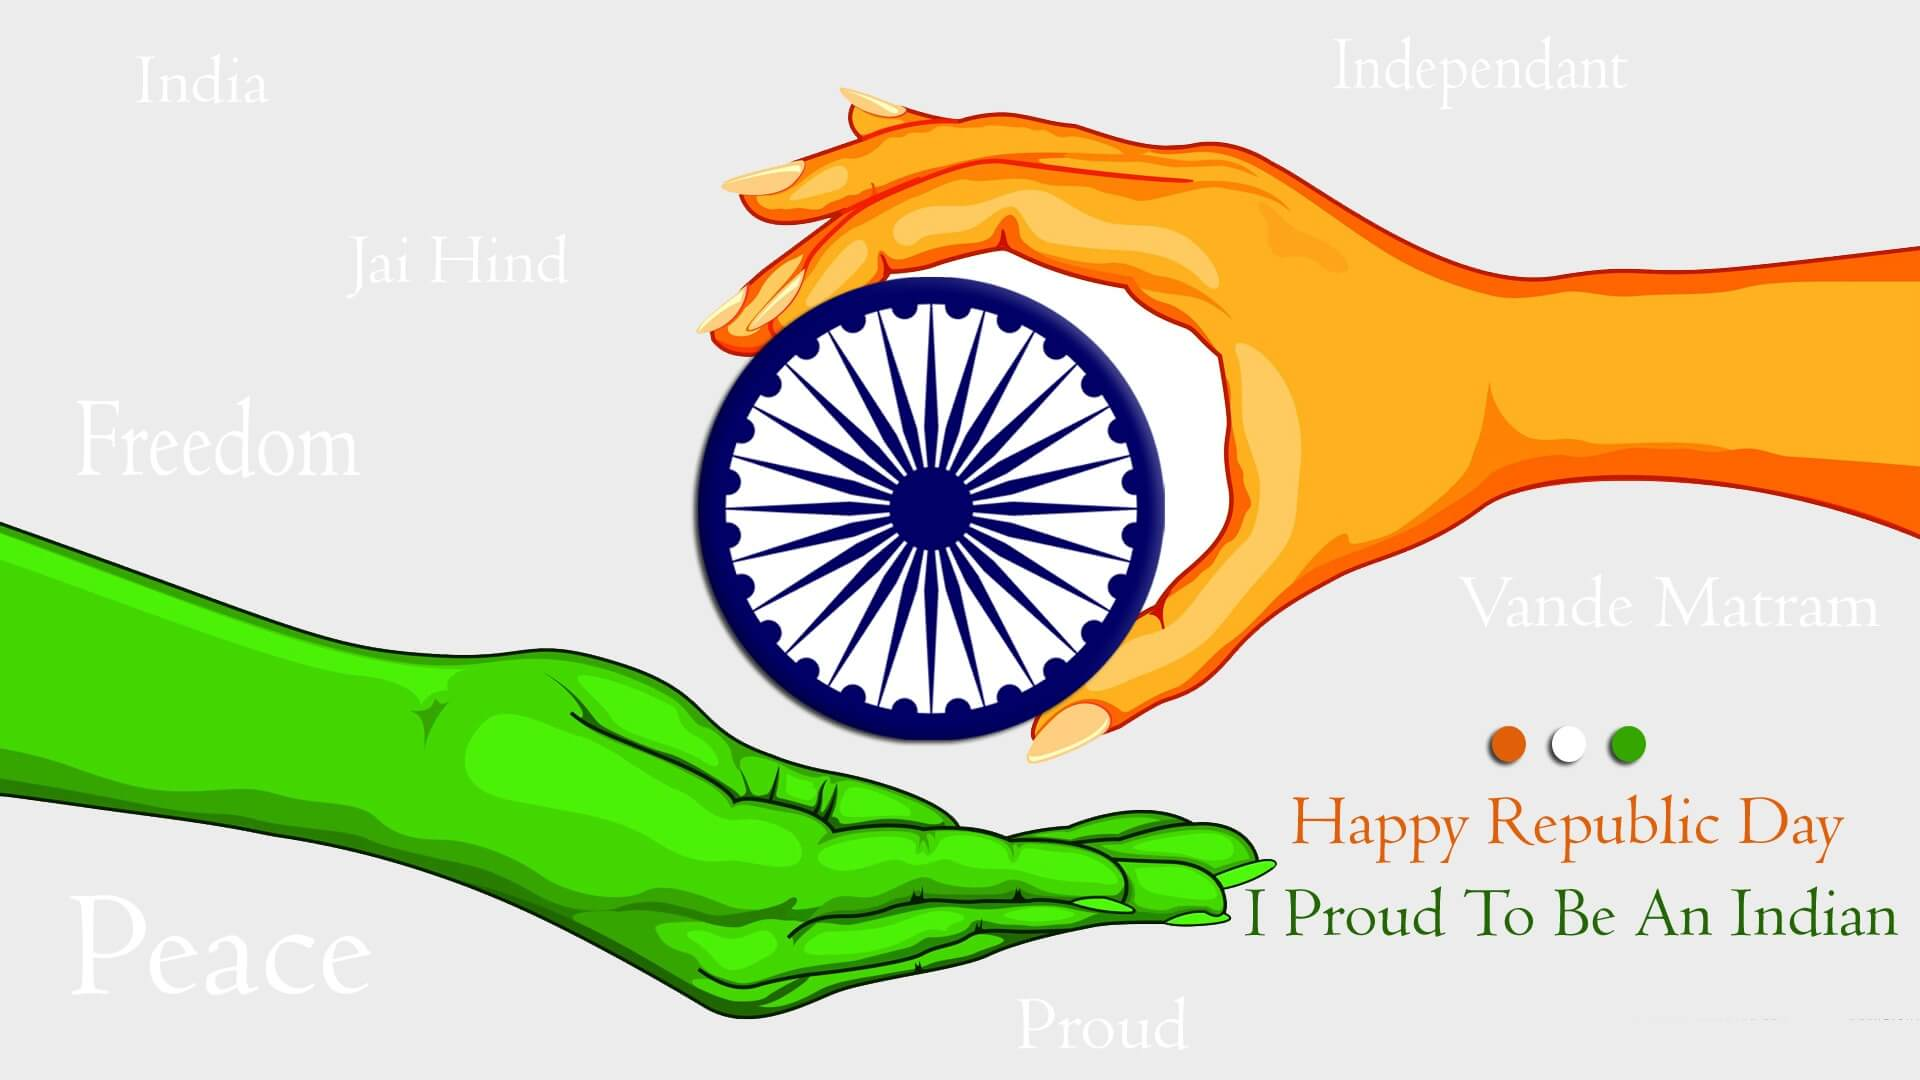 Happy Republic Day 26 January Best Wishes Greetings 2020 Happy republic day images 2021 muslim